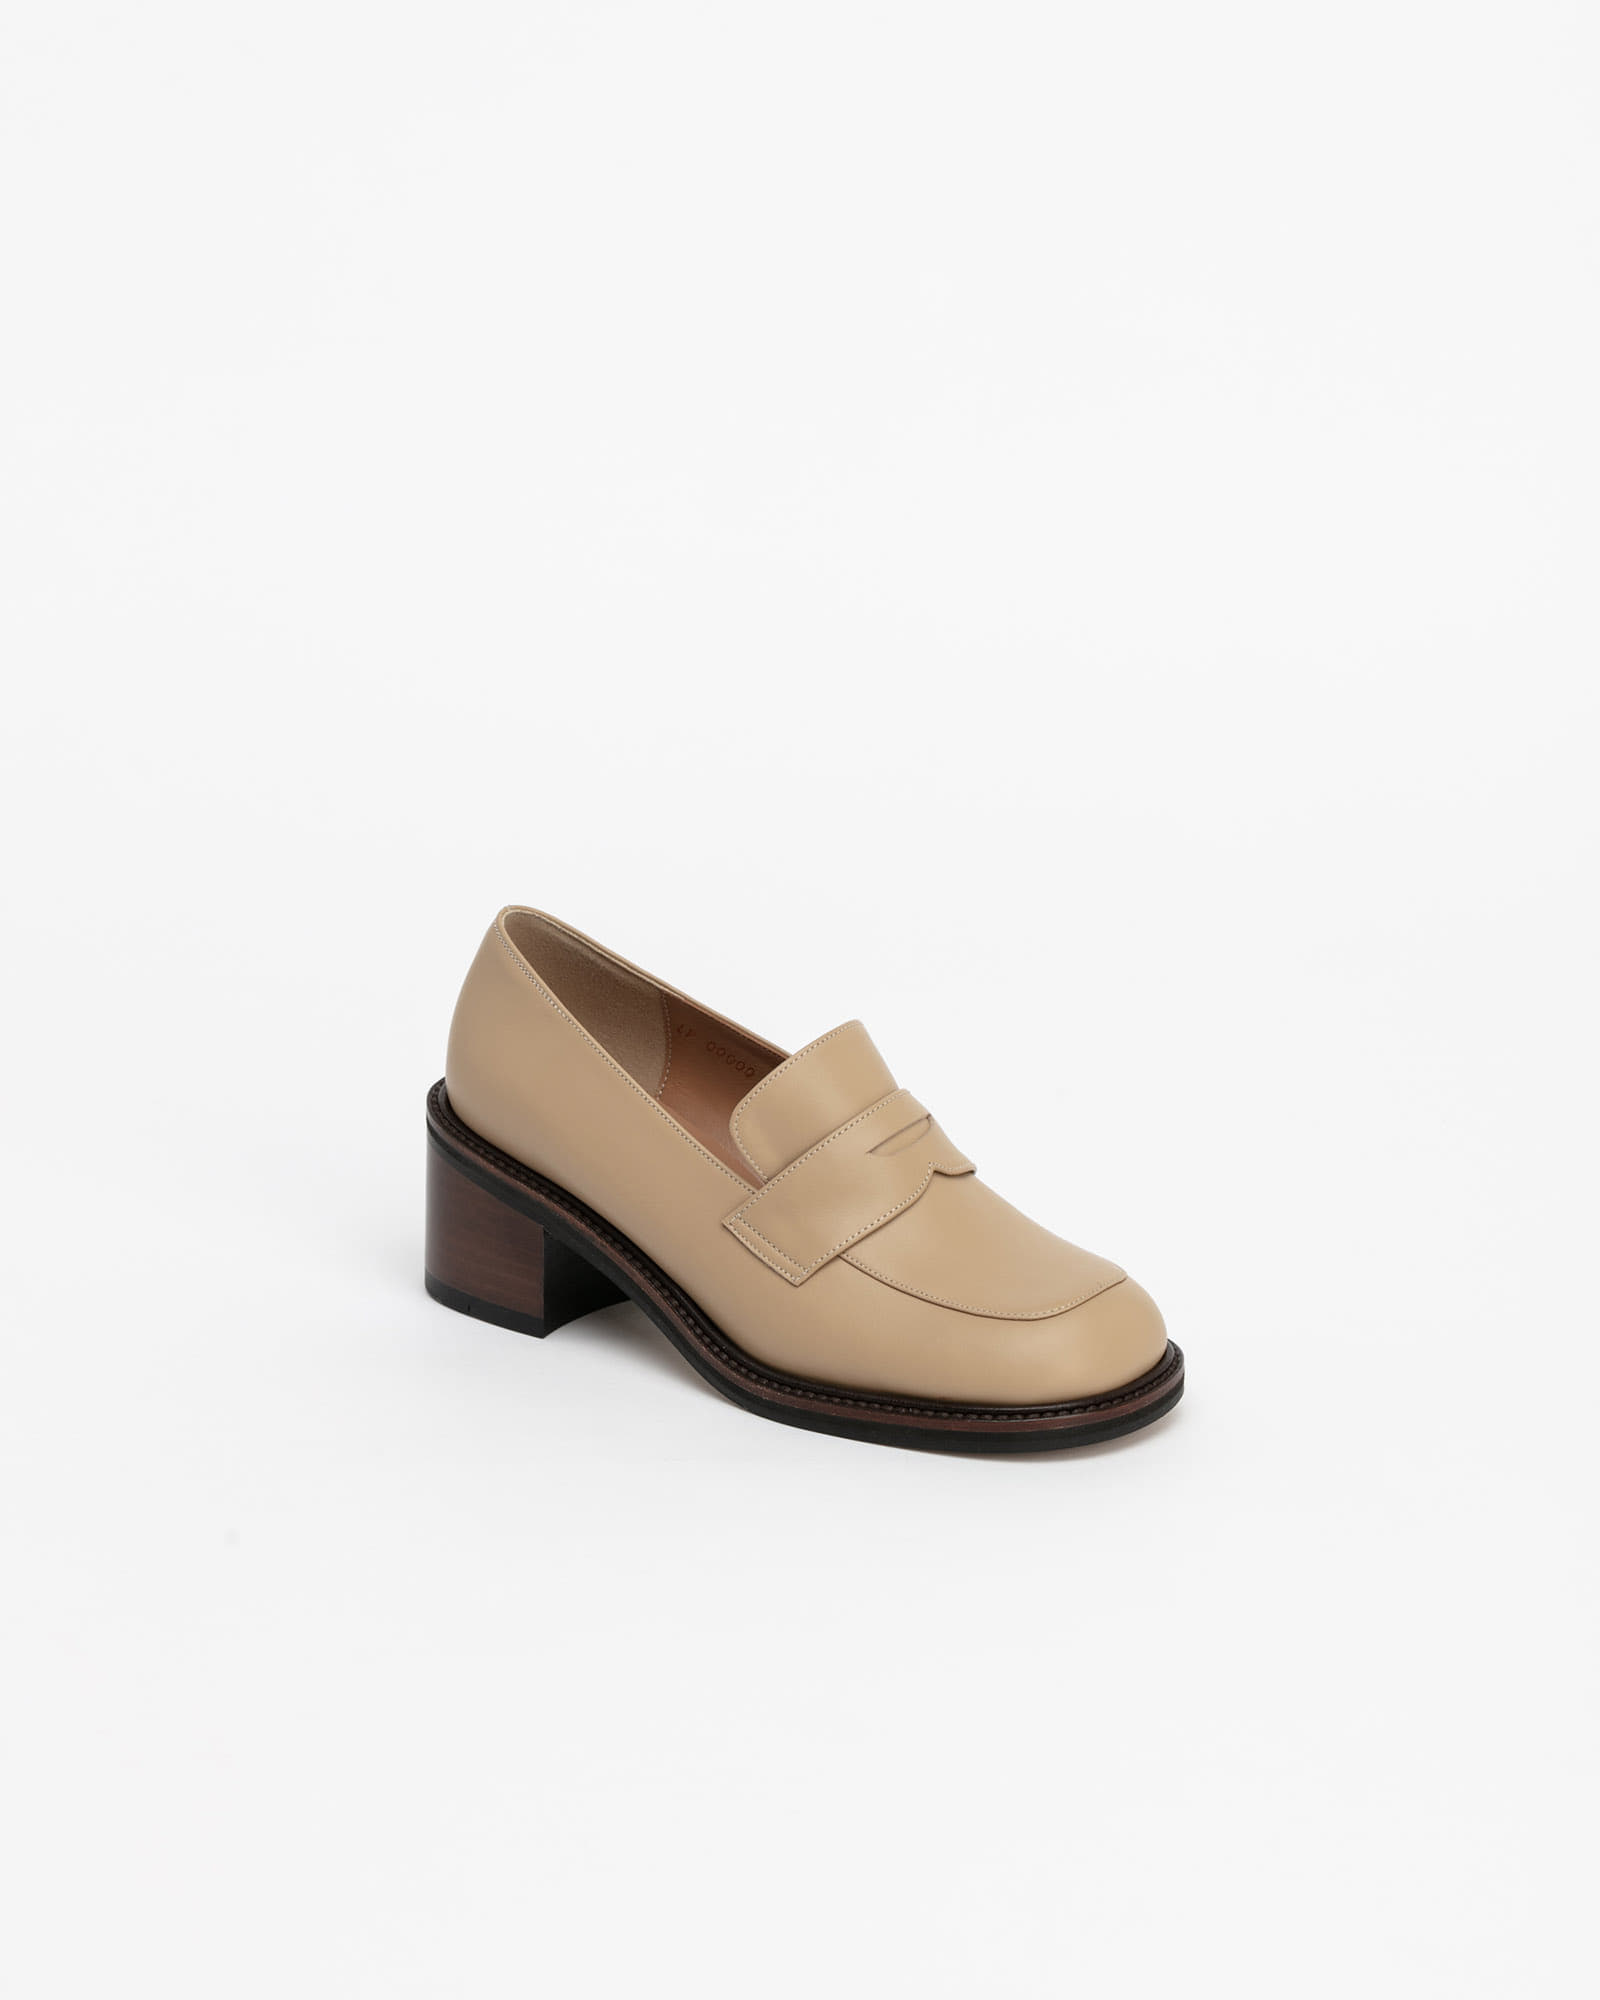 Le Ban Saint Loafers in Beige